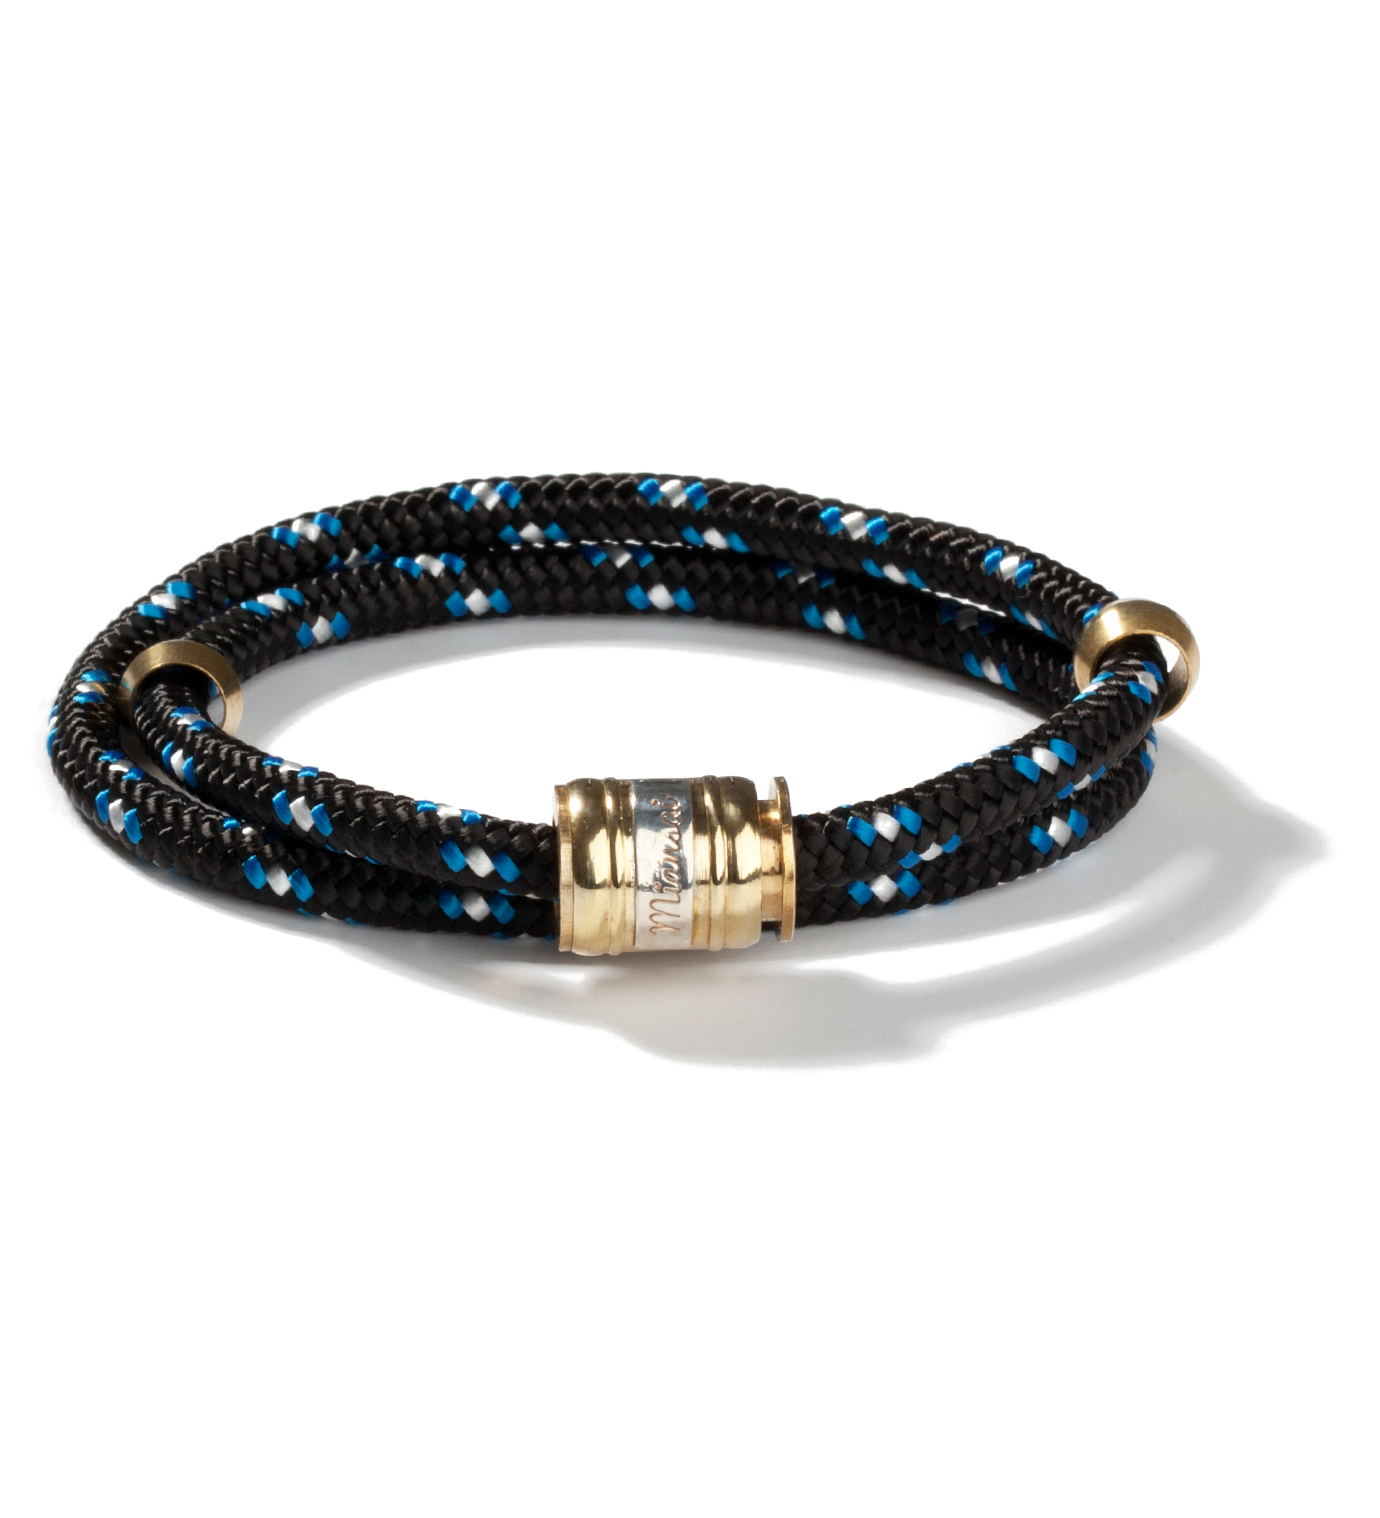 Miansai Black/Blue Casing Bracelet